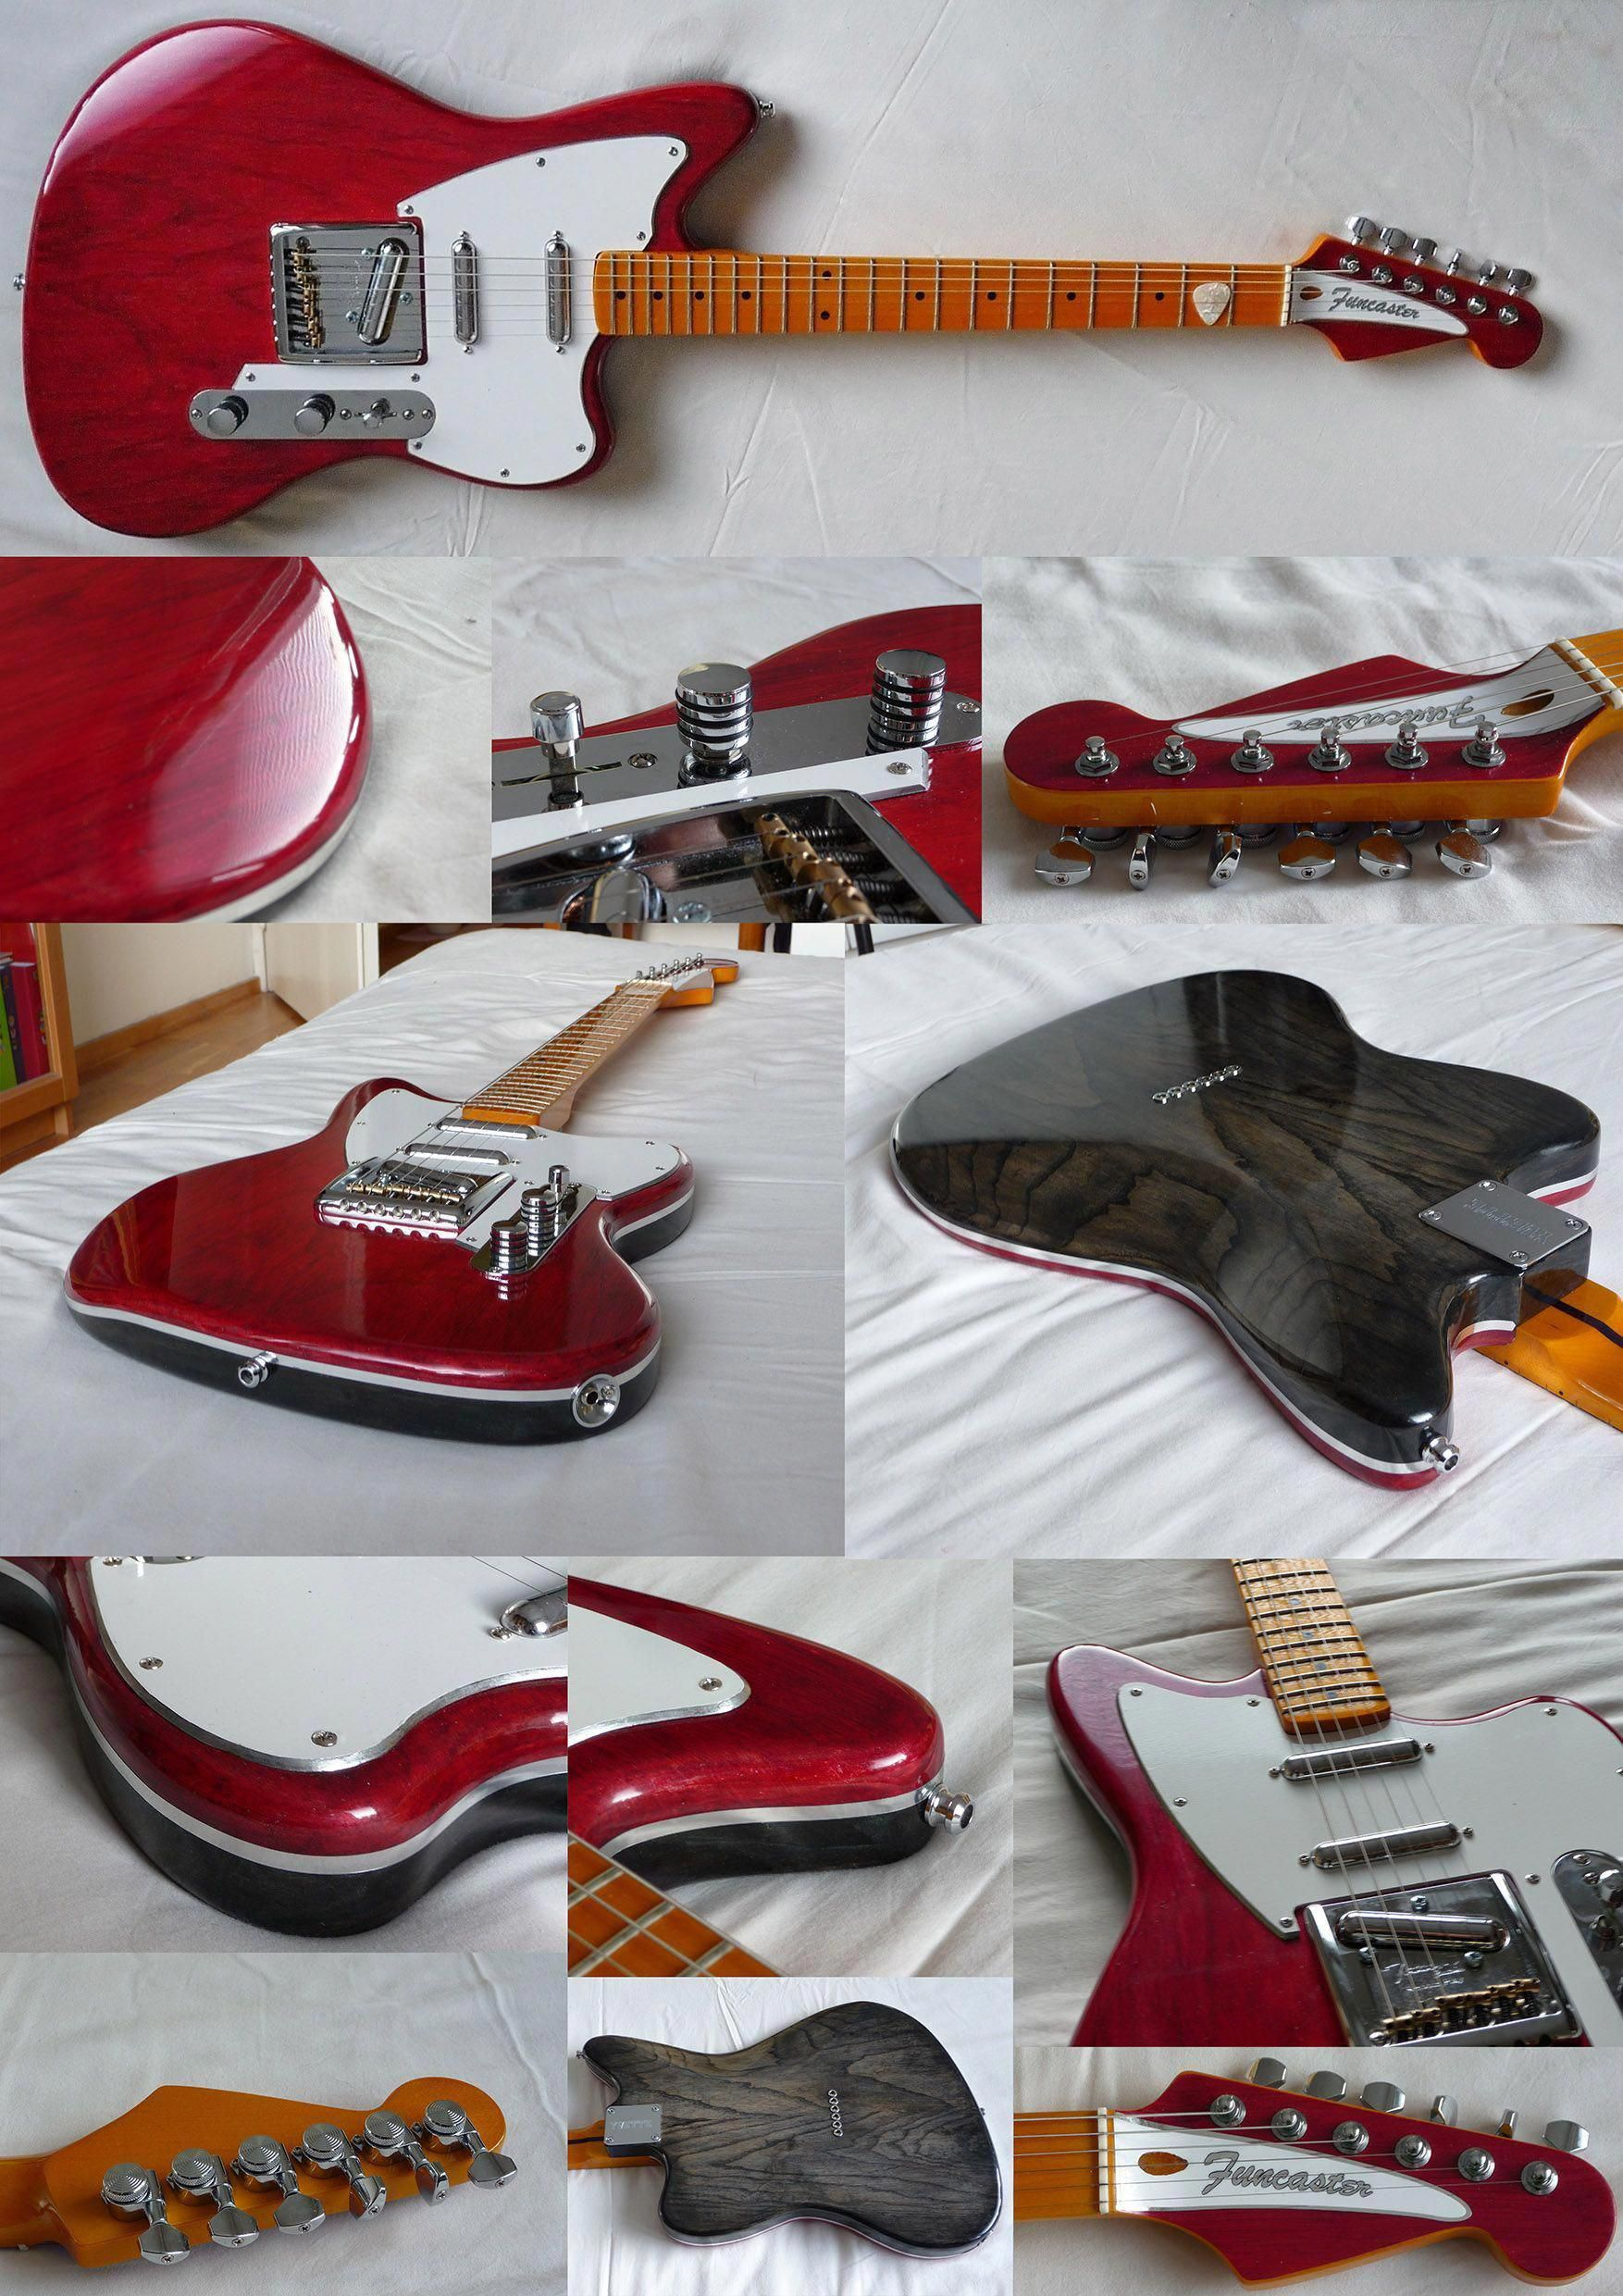 Pin On Fender Usa Fender Europe Fender Squire Europe Fender Mexico Fender Indonesia Fender Japan Fender China Electric Guitars Amplifiers Other Fender Products